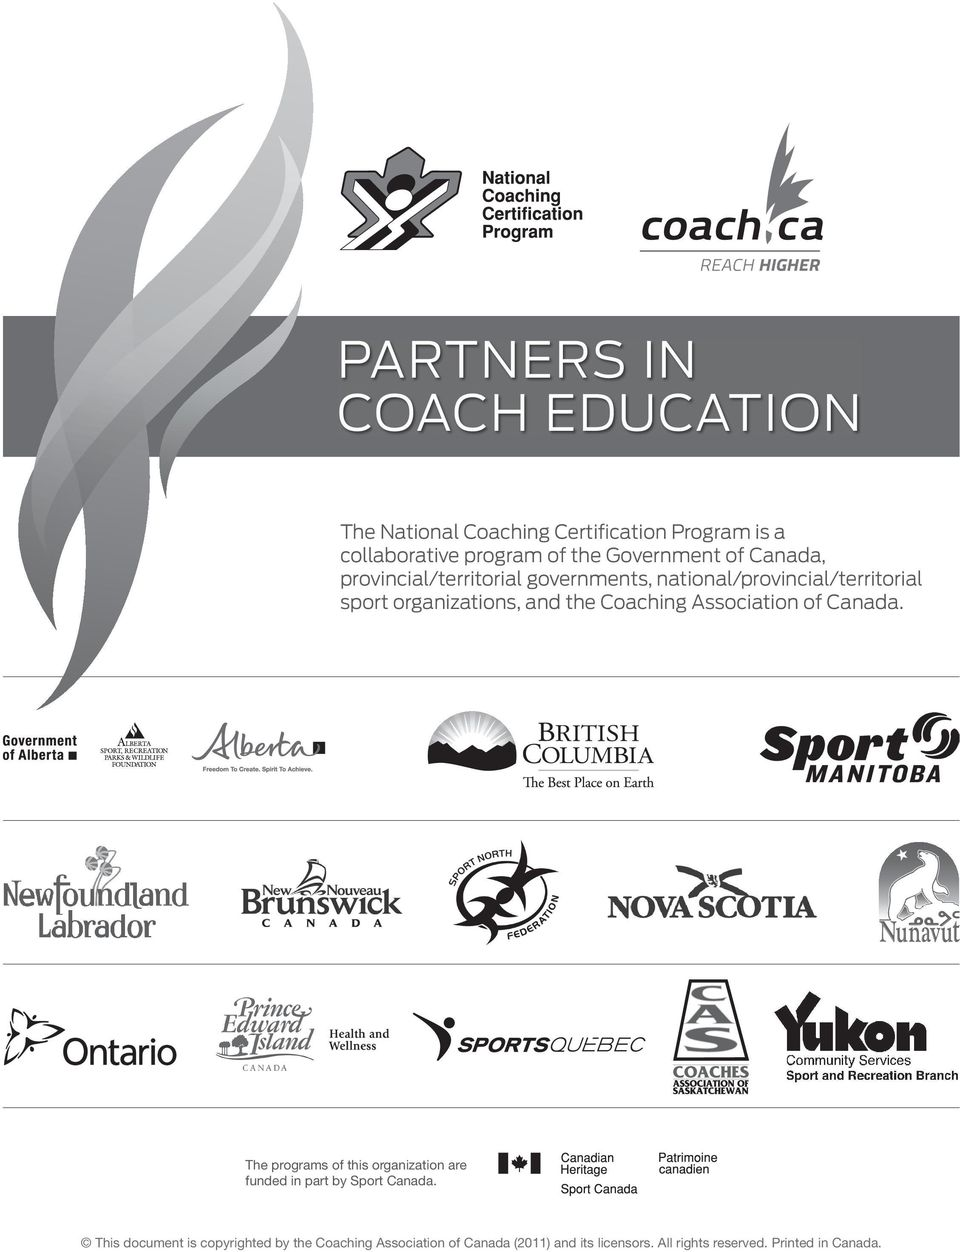 the Coaching Association of Canada. The programs of this organization are funded in part by Sport Canada.